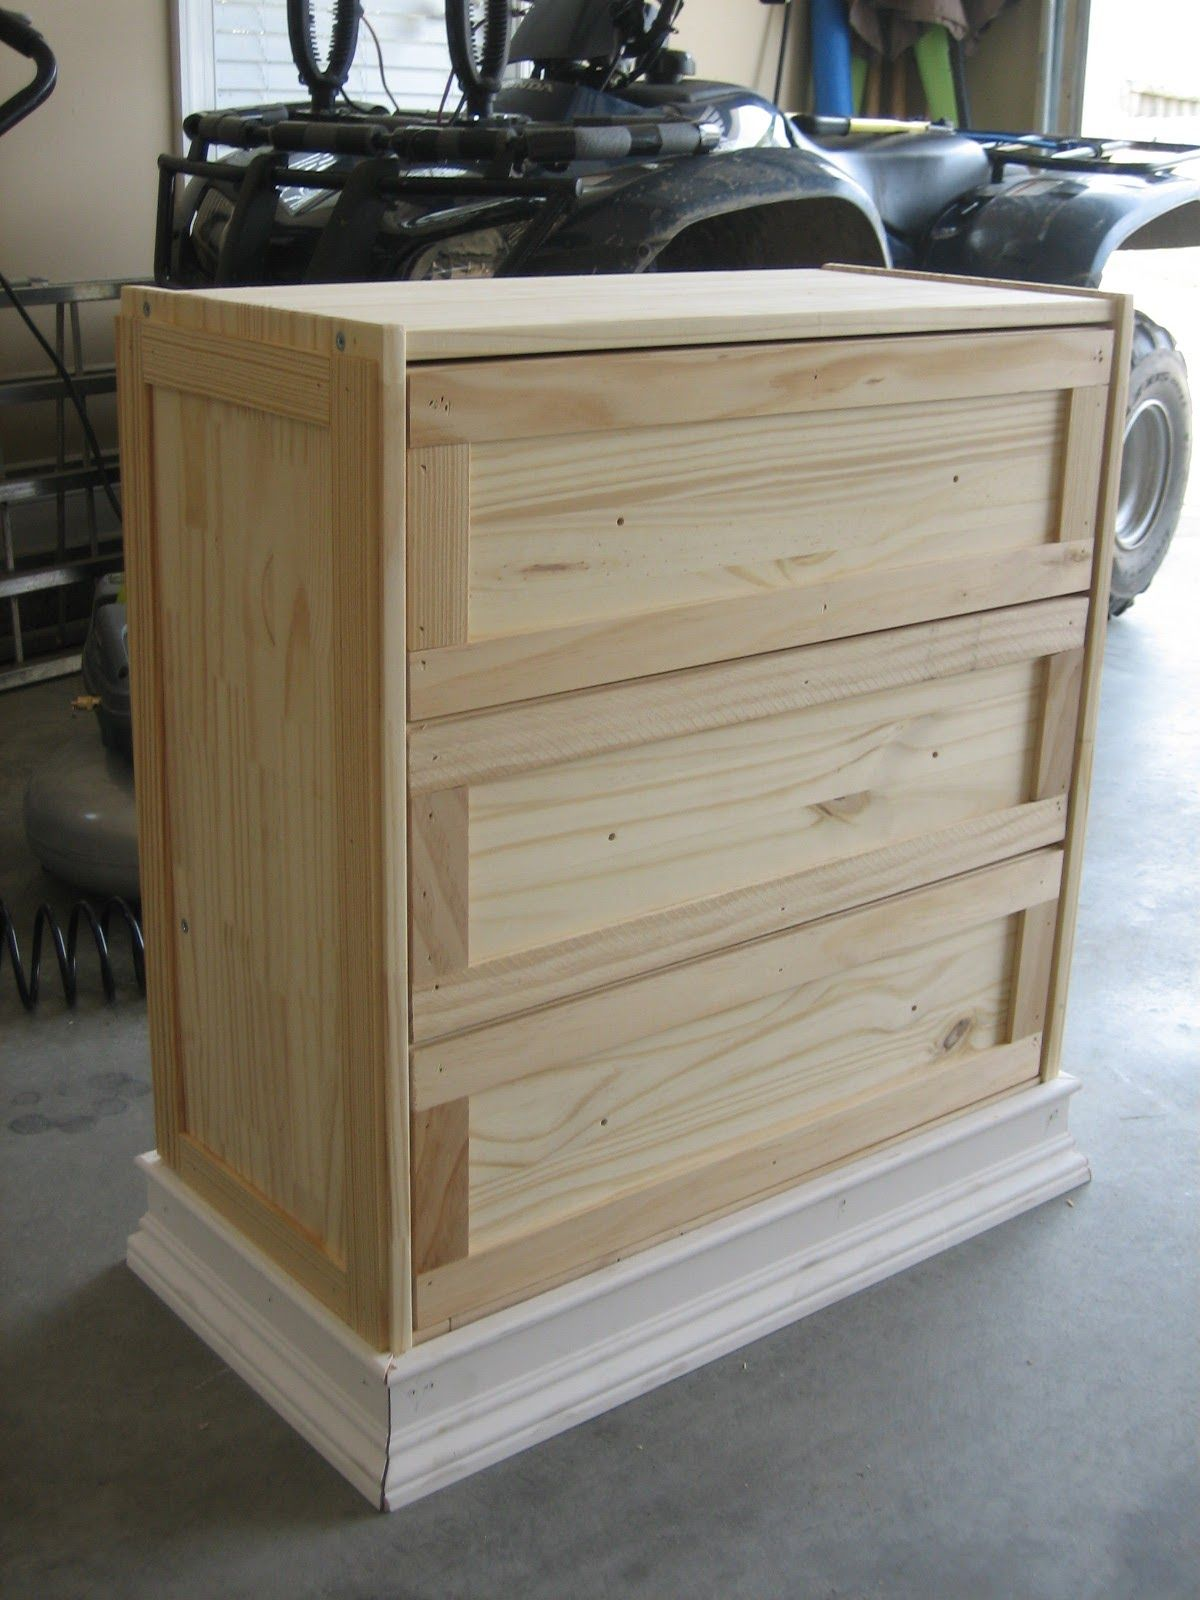 Ikea Hack Nightstand Ikea Rast Hack Tutorial At Home In The Northwest At Home In The